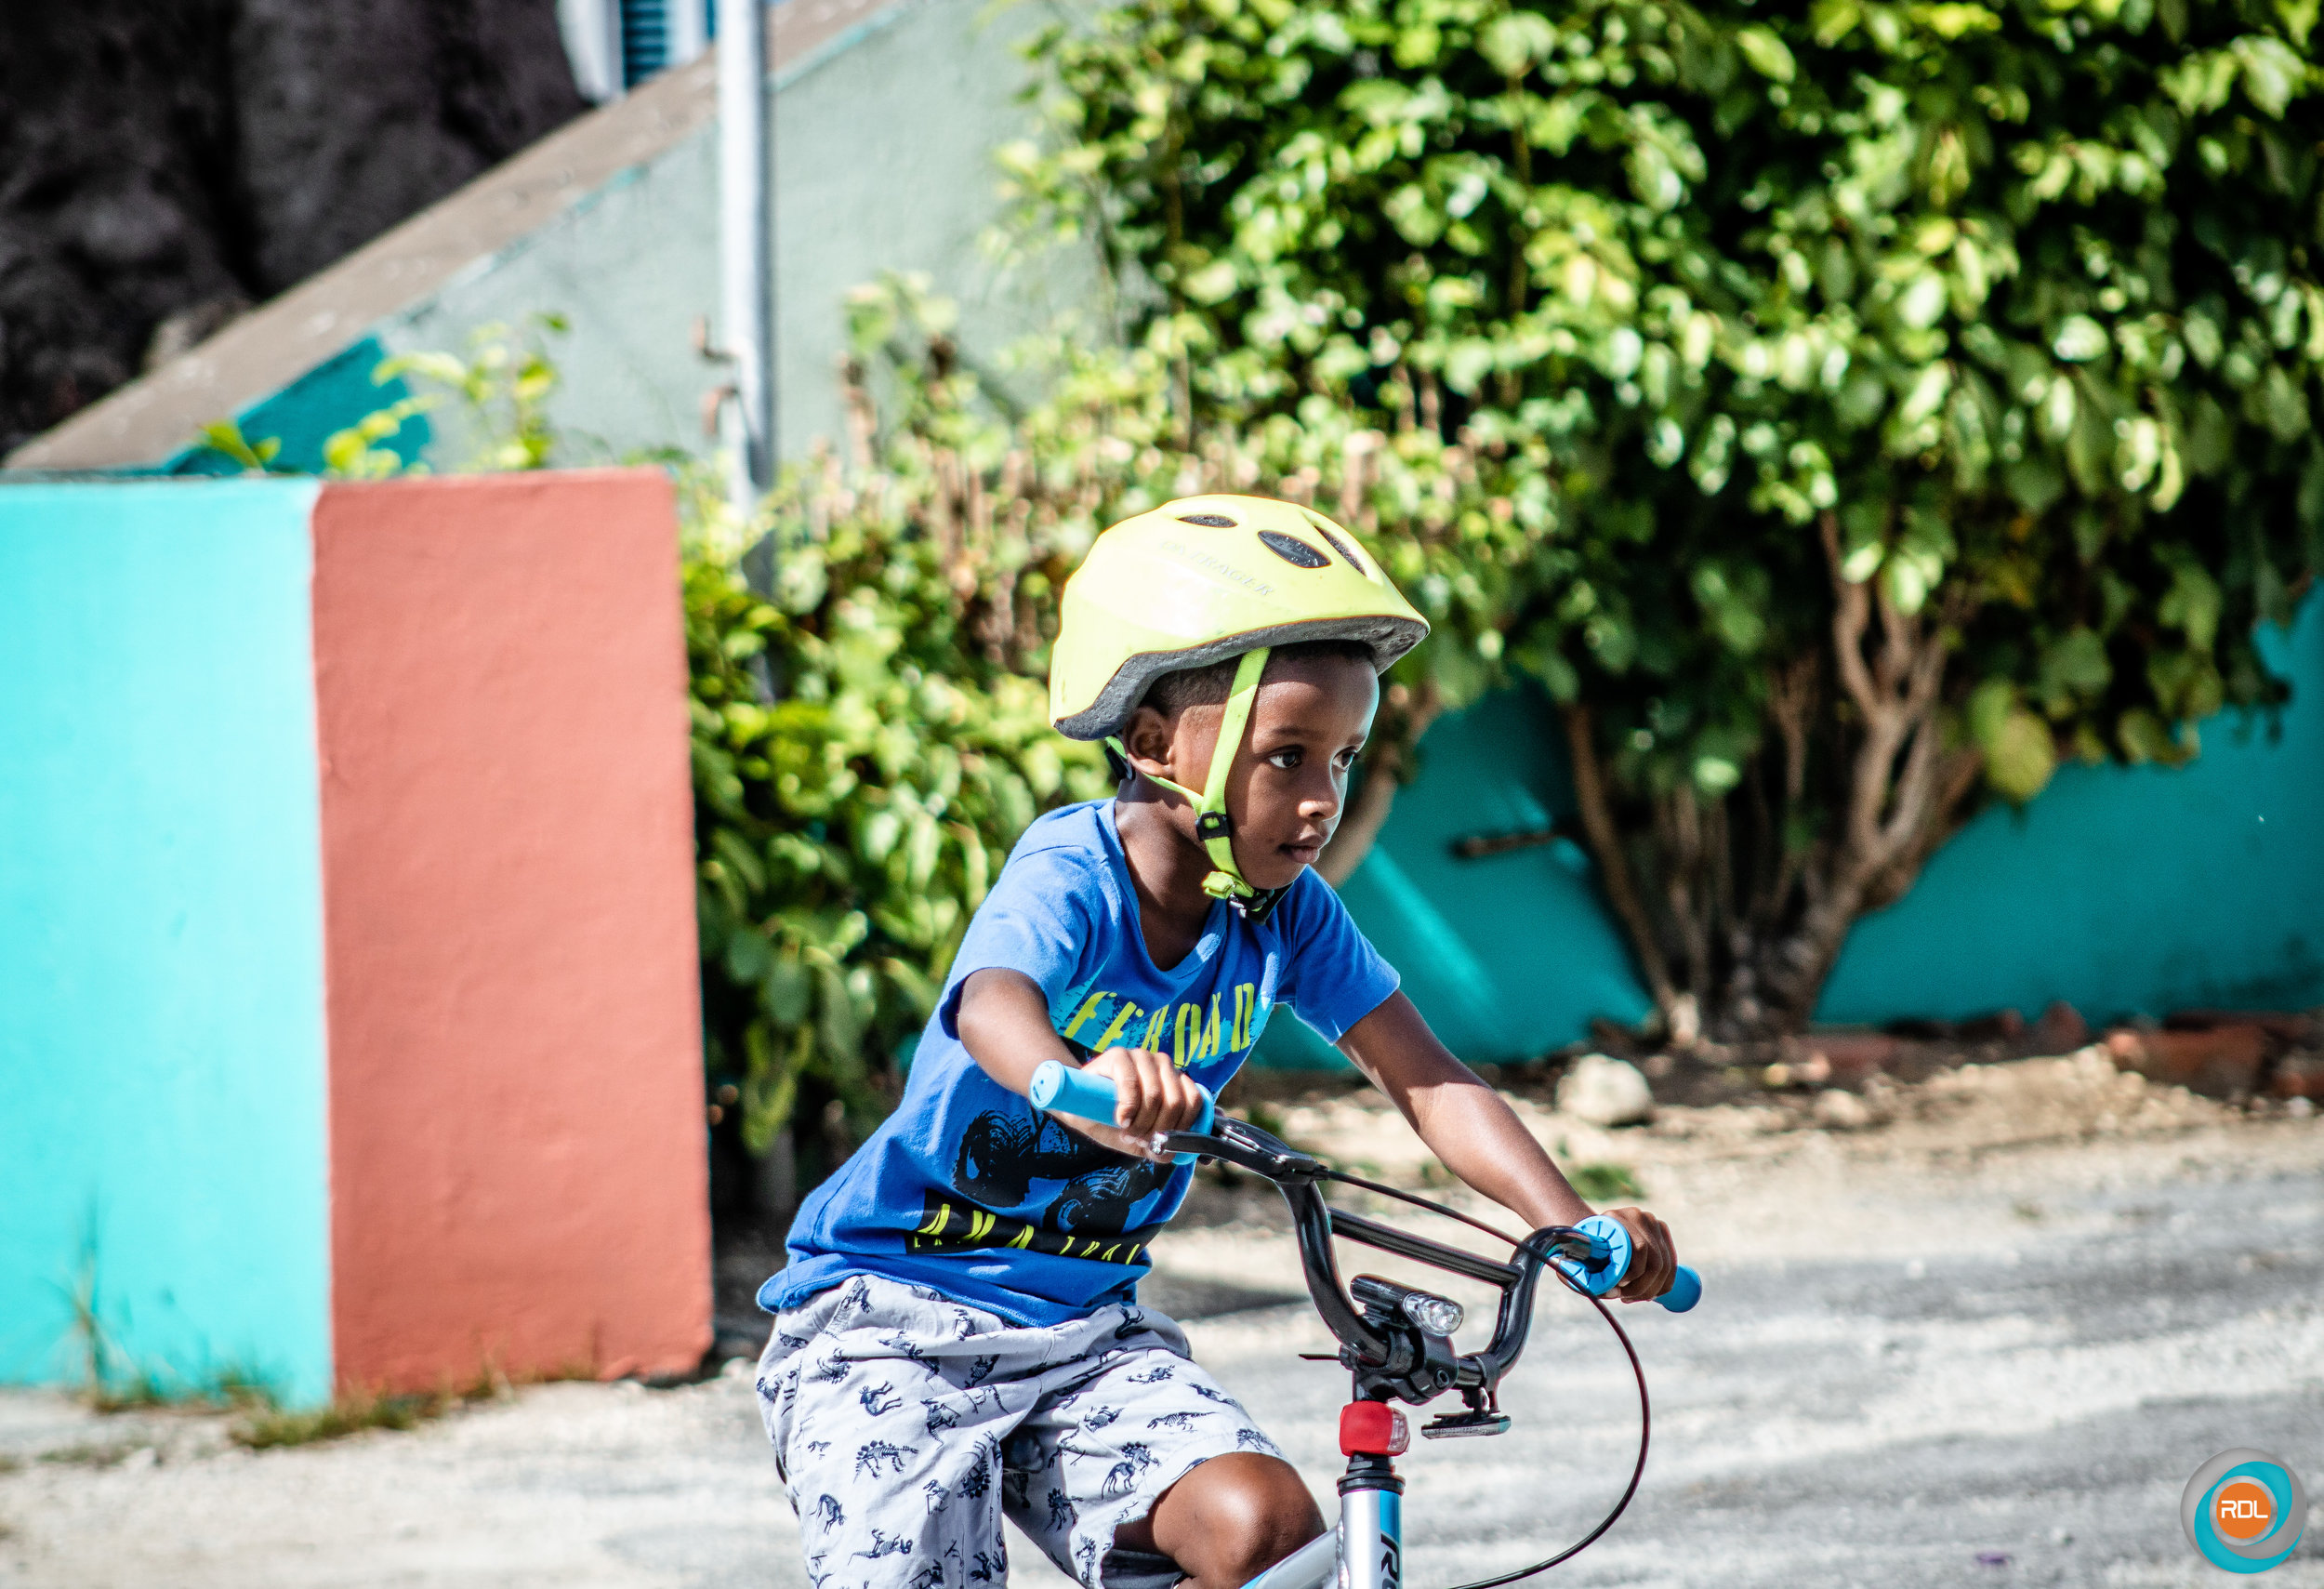 The BMX 7 and under category was represented by independent cyclist Dylan Headley.